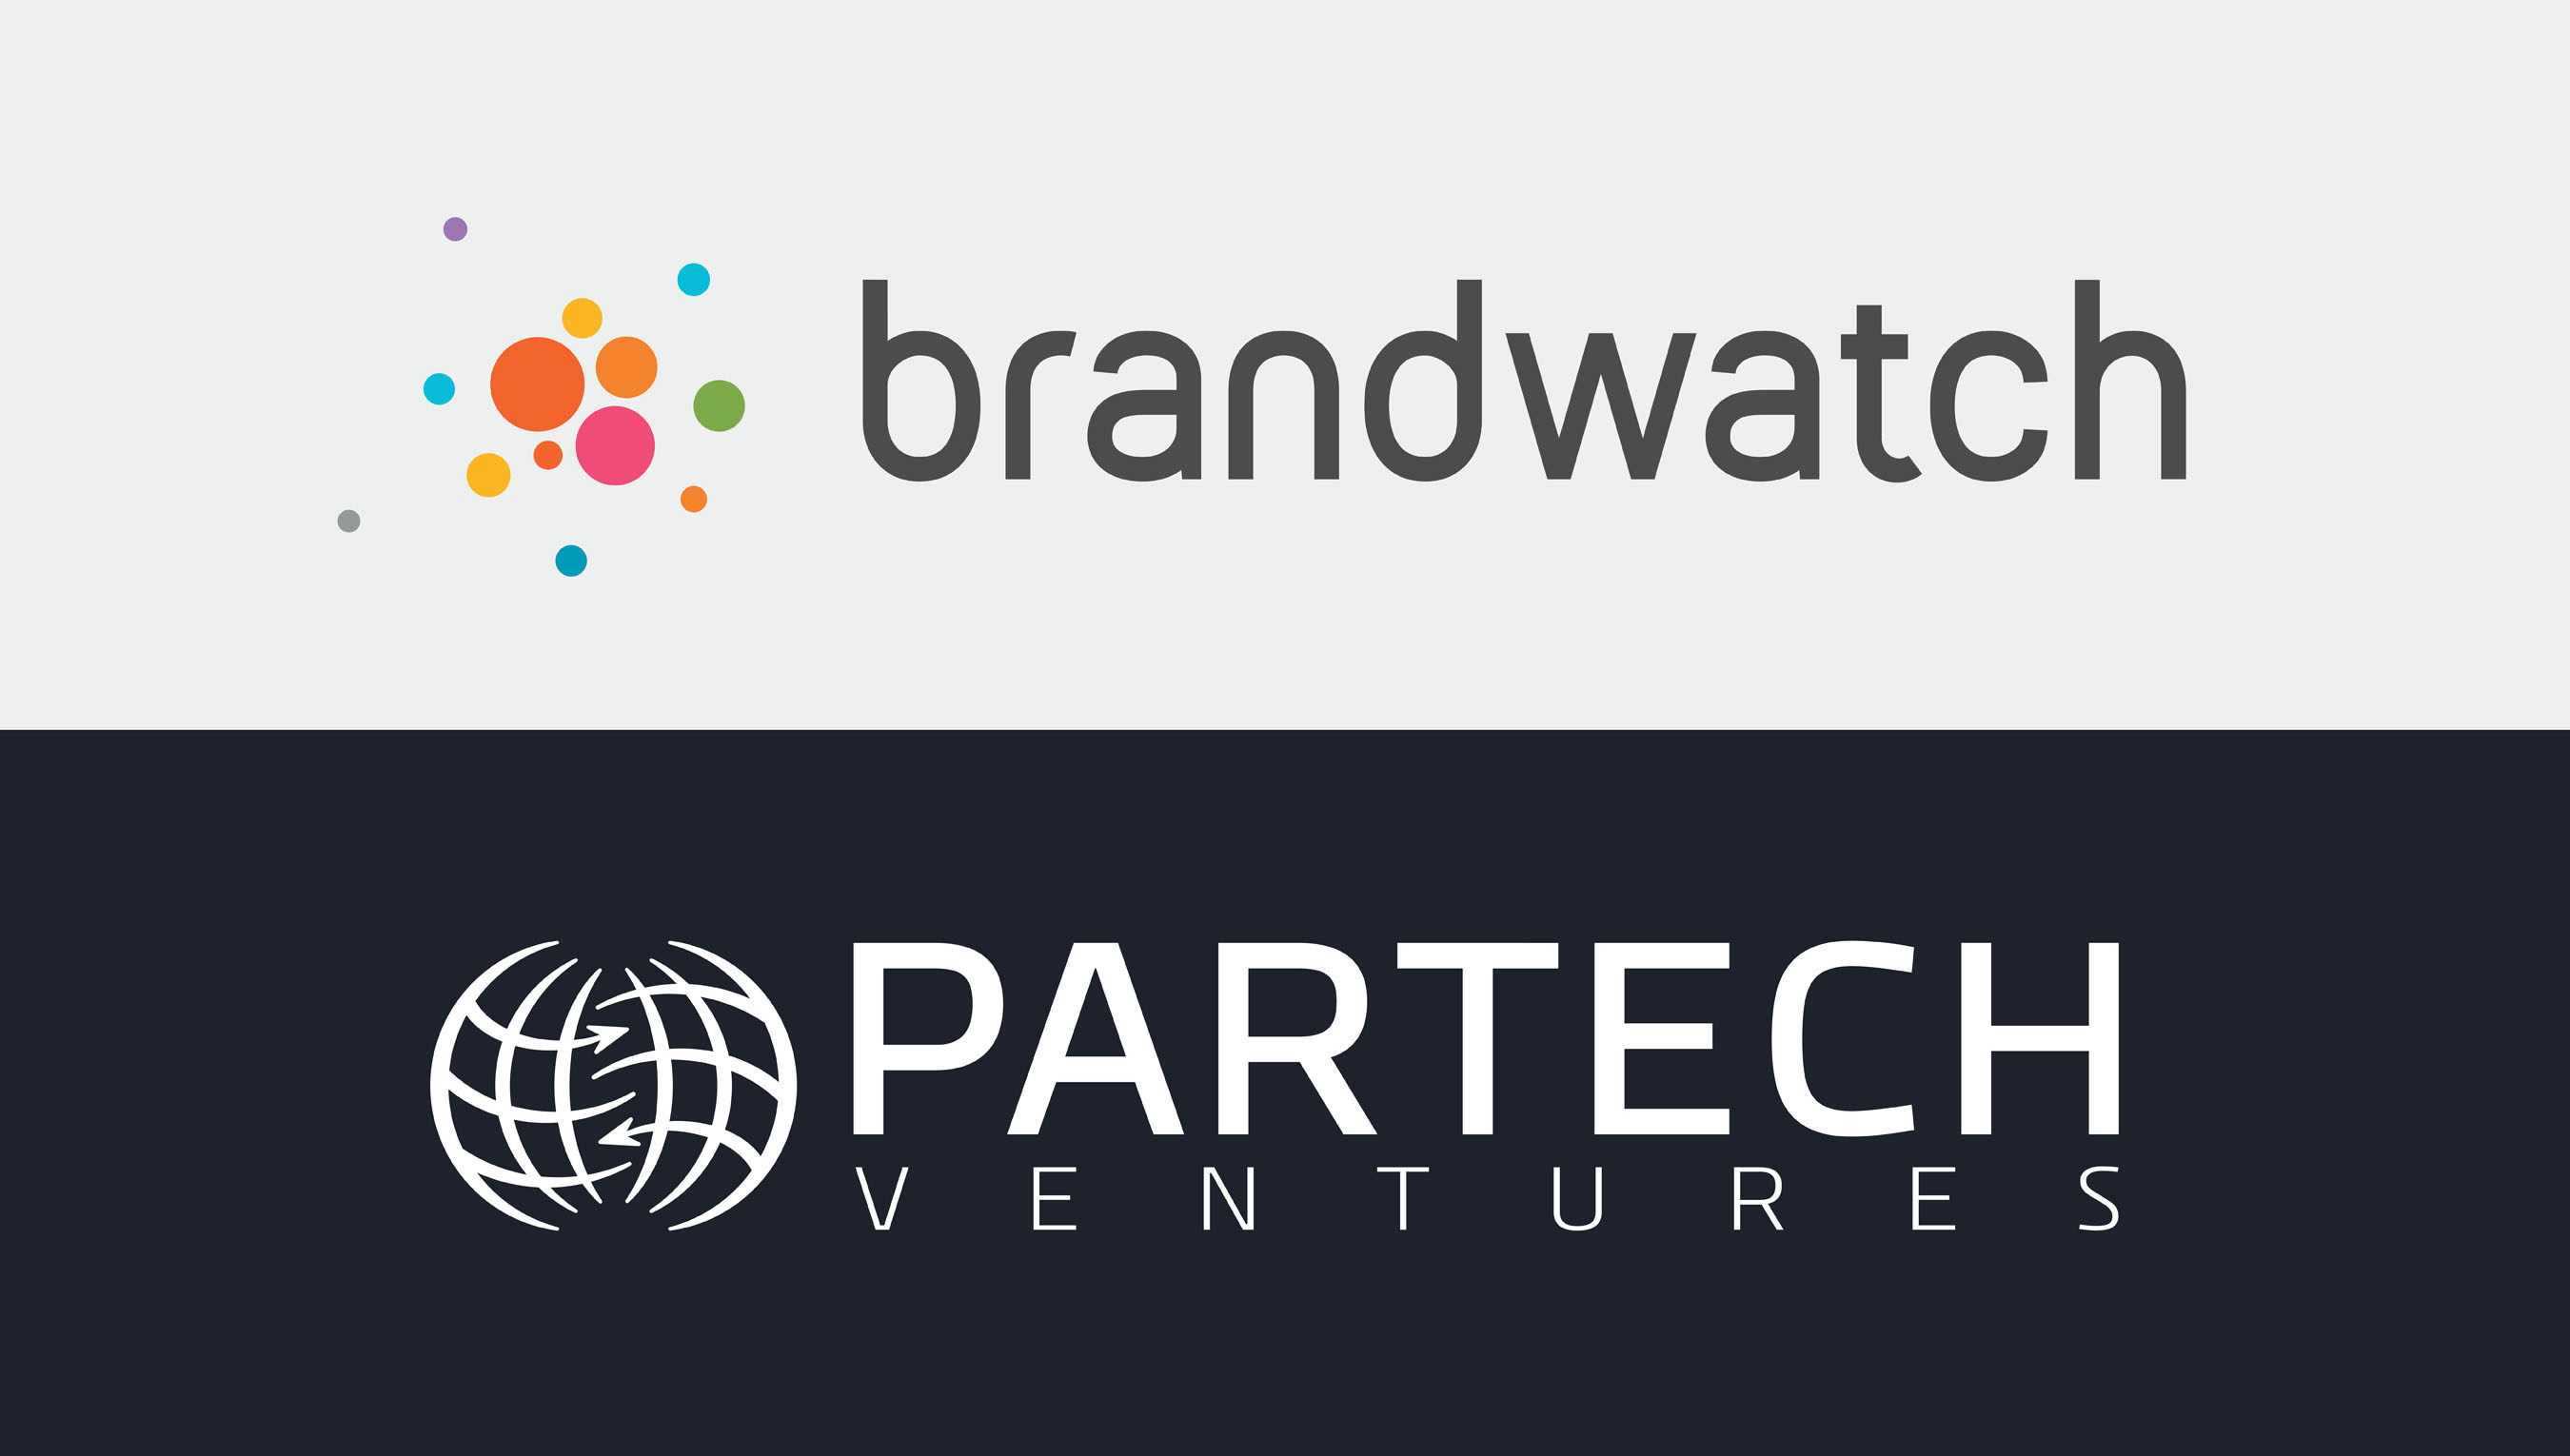 Brandwatch Raises $33 Million to Fuel Social Intelligence Growth